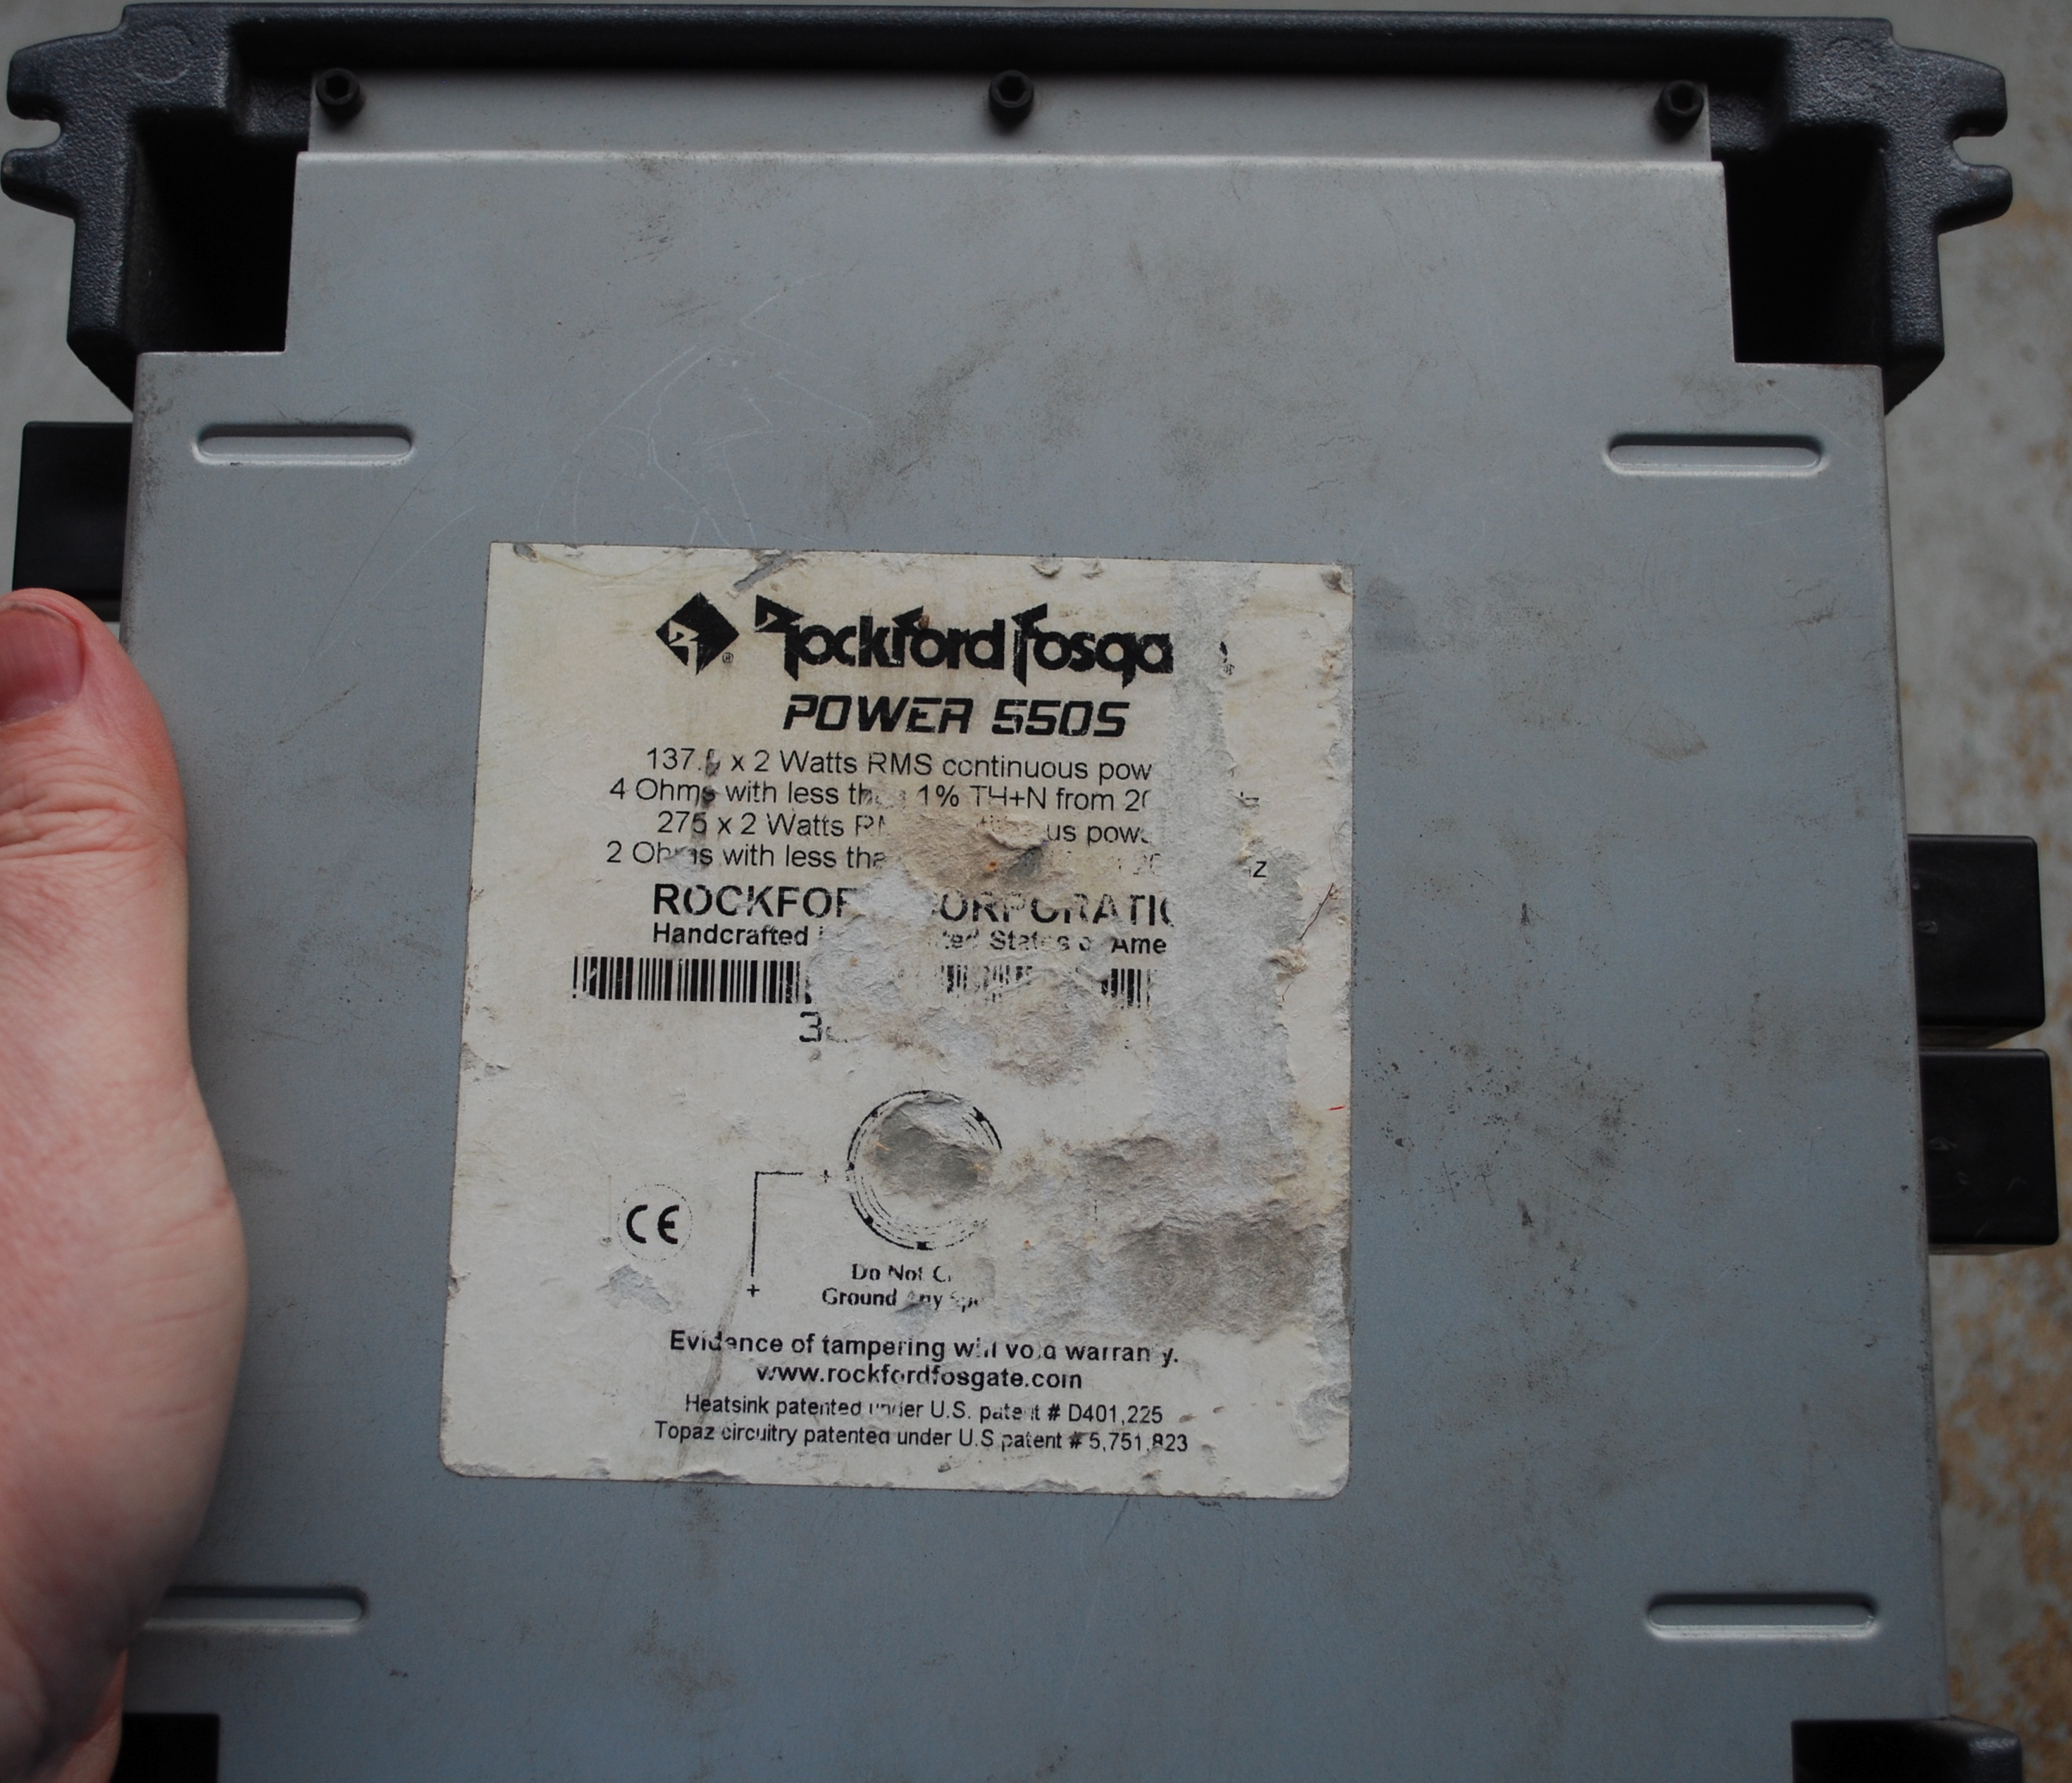 Old School Rockford Fosgate Power 550s Specs Click Image For Larger Version Name Dsc 0063 Views 239 Size